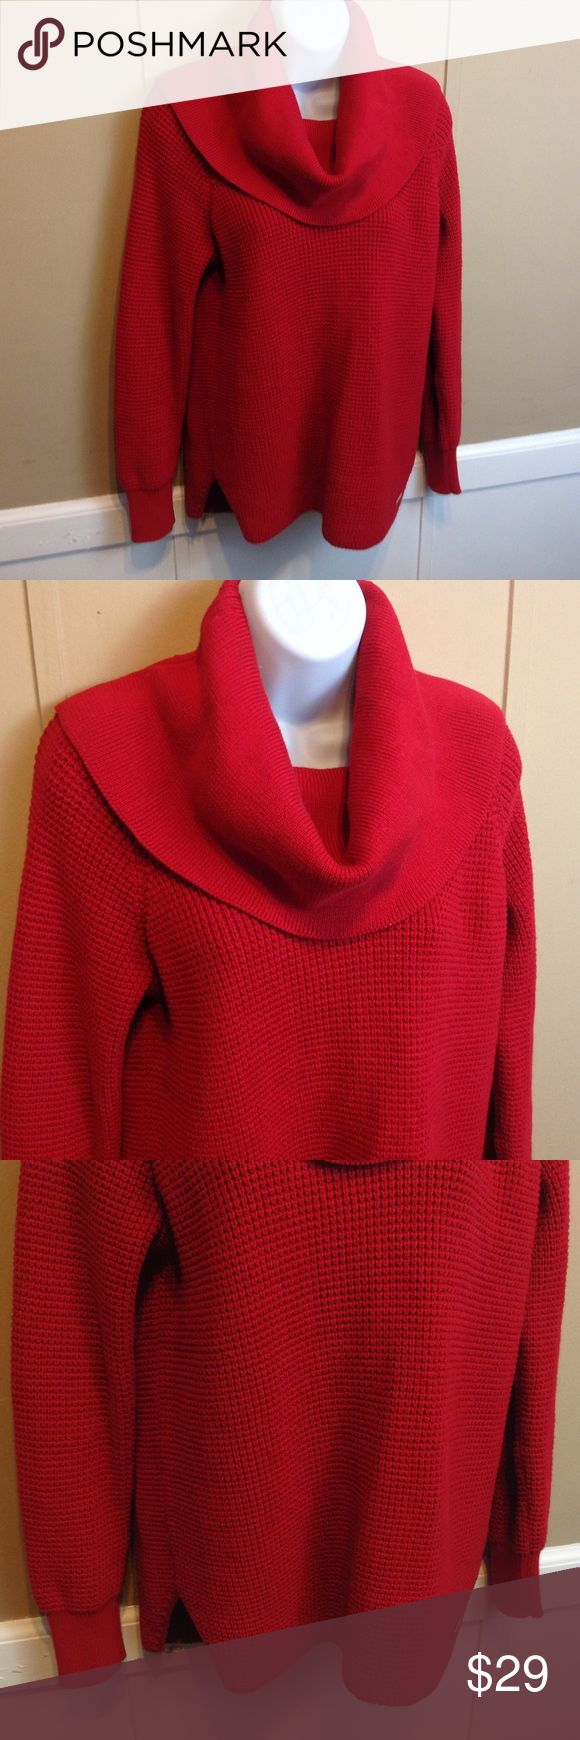 "MK Michael Kors Cowl Neck Sweater Maker: MK Michael Kors ♥ Material: 60% Cotton 40% Polyester ♥ Color: Red ♥ Measured Size: Pit to pit- 19"" Pit to cuff- 17"" Shoulder to waist- 26""  ♥ Tag Size:  XS ♥ Actual Size: XS PLEASE CHECK YOUR ACTUAL MEASUREMENTS TO MAKE SURE IT IS THE RIGHT SIZE! THANKS! ♥ Condition: Great used Condition ♥ Item #: (office use only) F  Follow us on Instagram and facebook for coupon codes!  INSTAGRAM-thehausofvintage1984 Facebook- intergalactic haus of vintage 1984 or…"